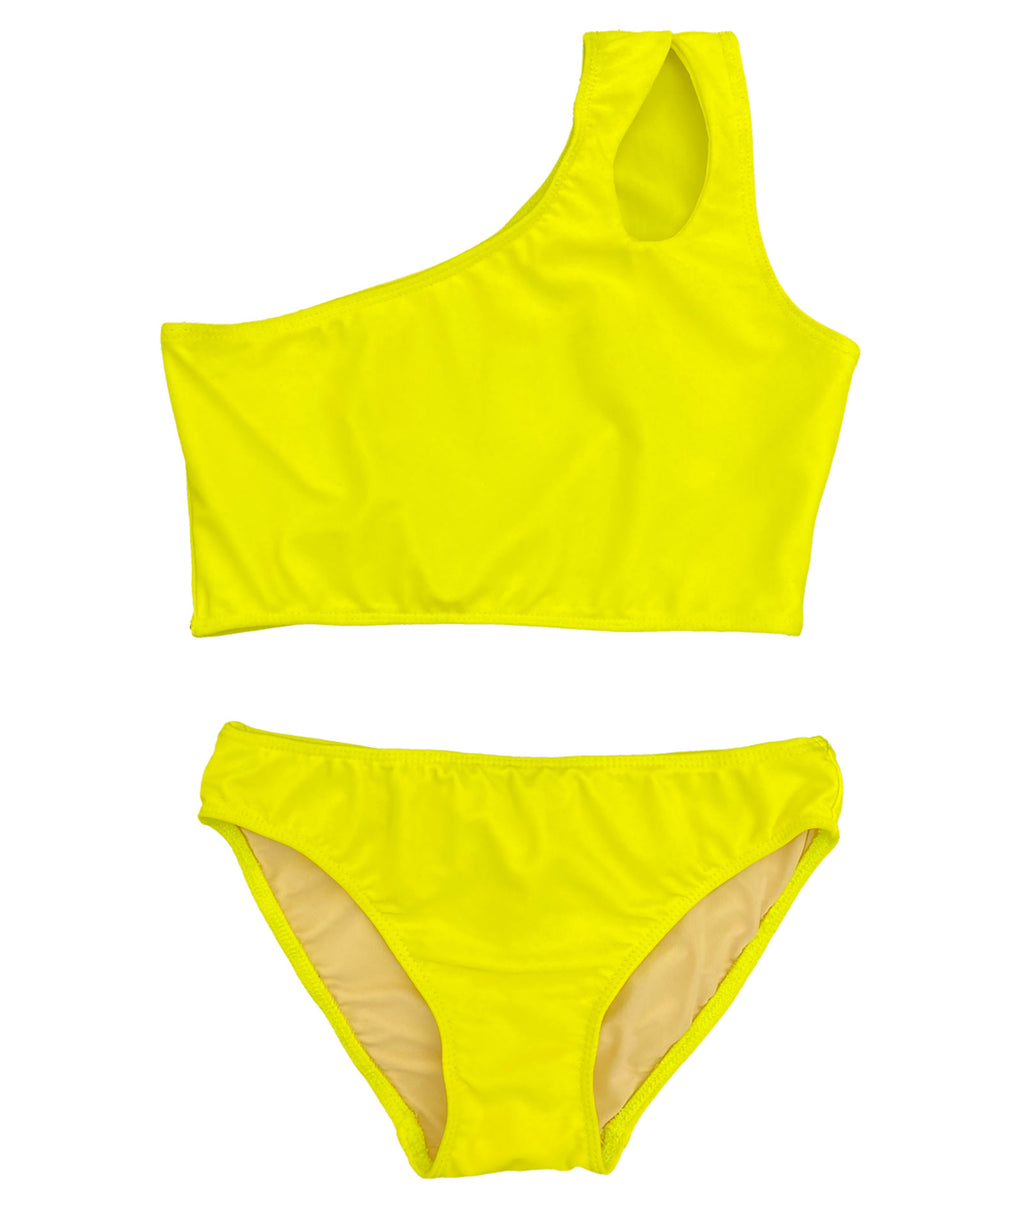 Cheryl Creations Girls Yellow 1-Shoulder Two Piece Bathing Suit